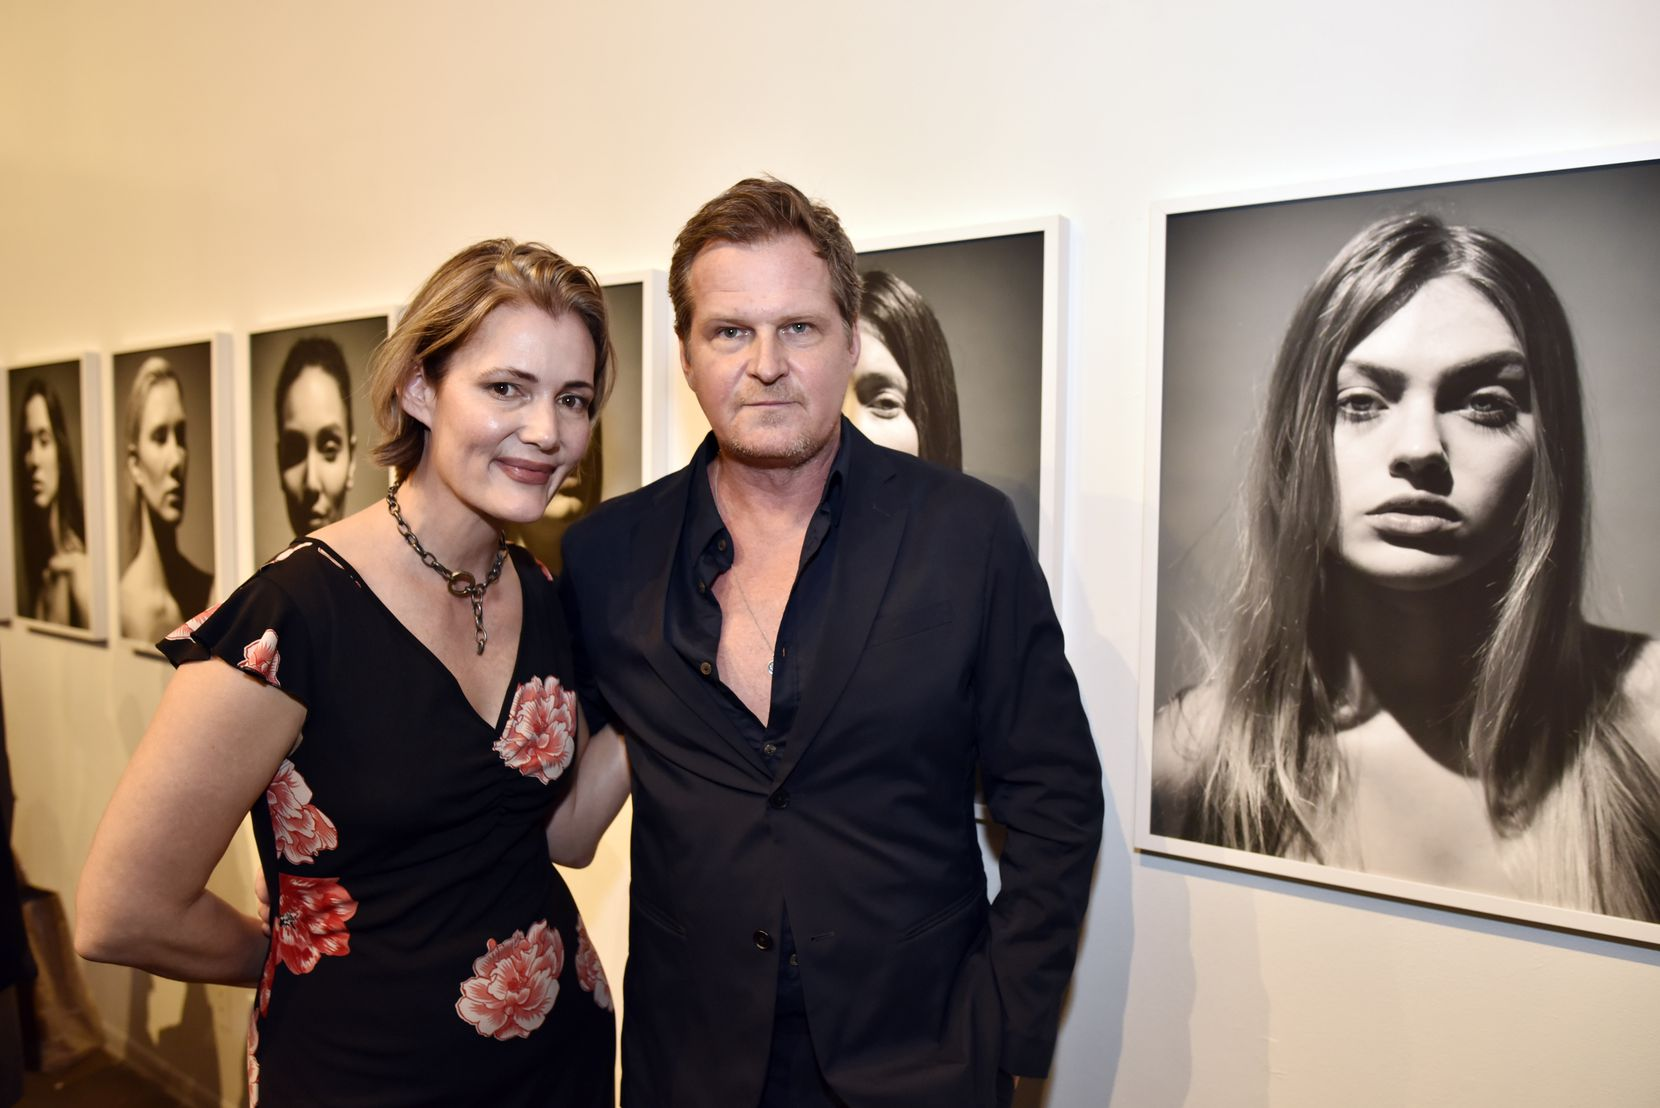 Photographer Fredrik Broden (right) with his wife, Lauren Galyean (left), at a 2017 exhibition of Broden's work at Tractorbeam gallery in Dallas.